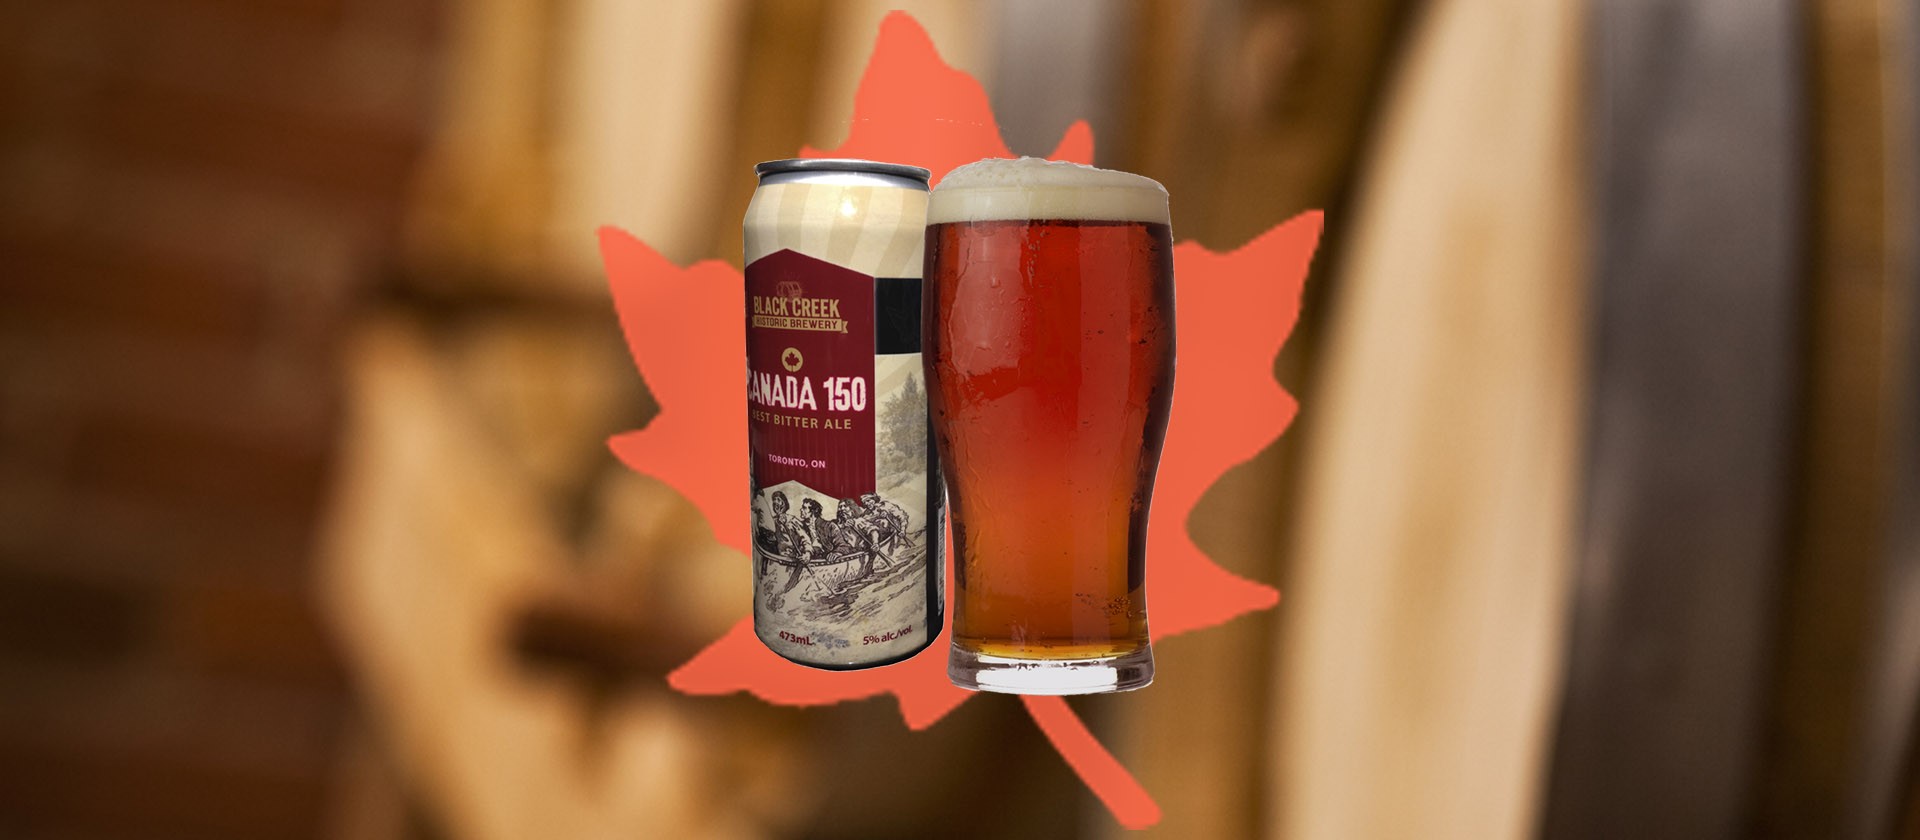 can of Black Creek Brewery Canada 150 best bitter against a maple leaf backdrop